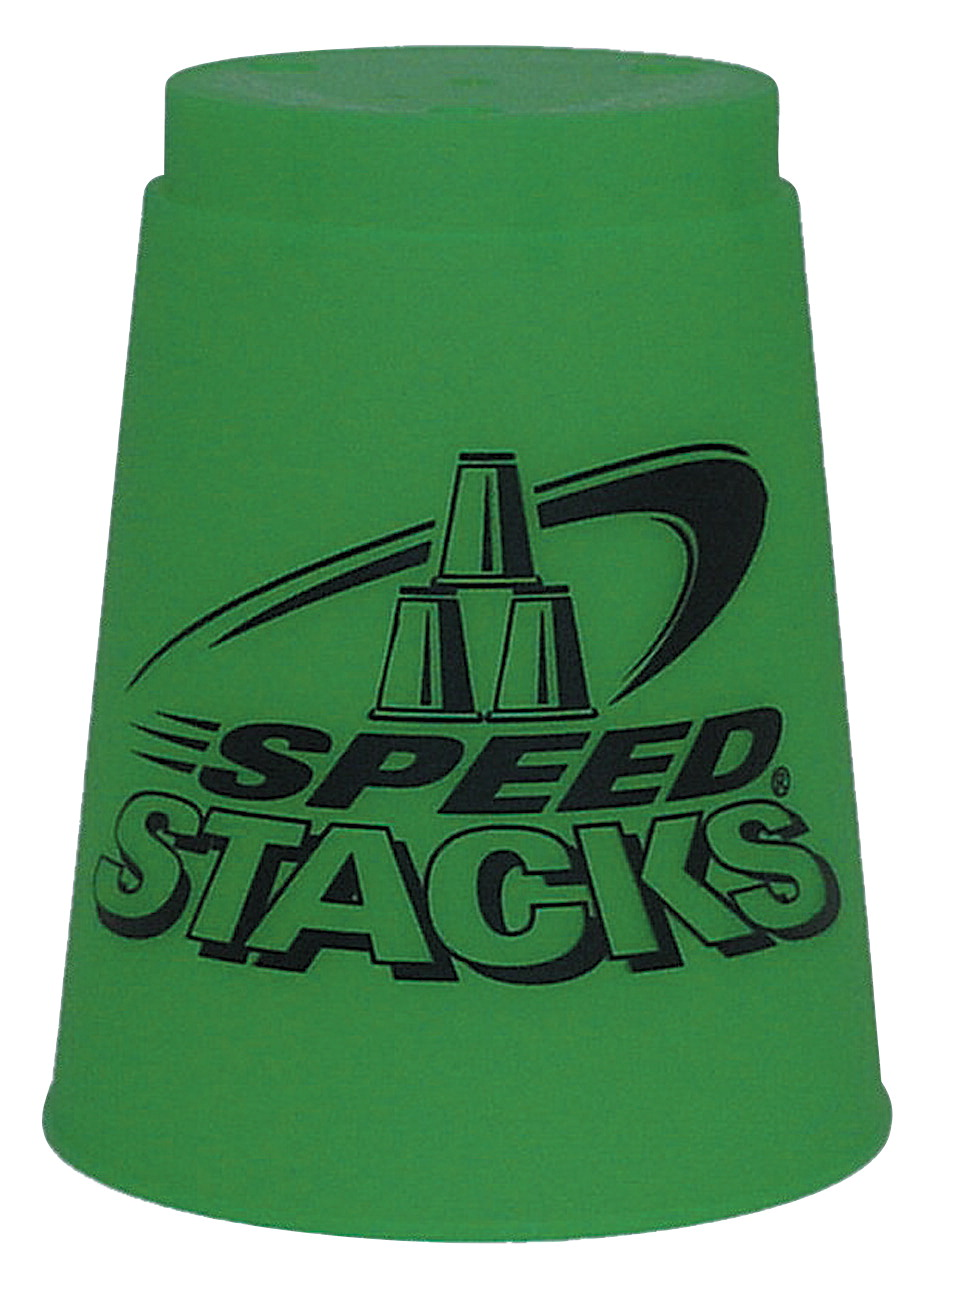 Baseball And Softball Baseball Athletic Supporter Cups - 018501 - Speed Stacks Cups; Set Of 12; Green 018501